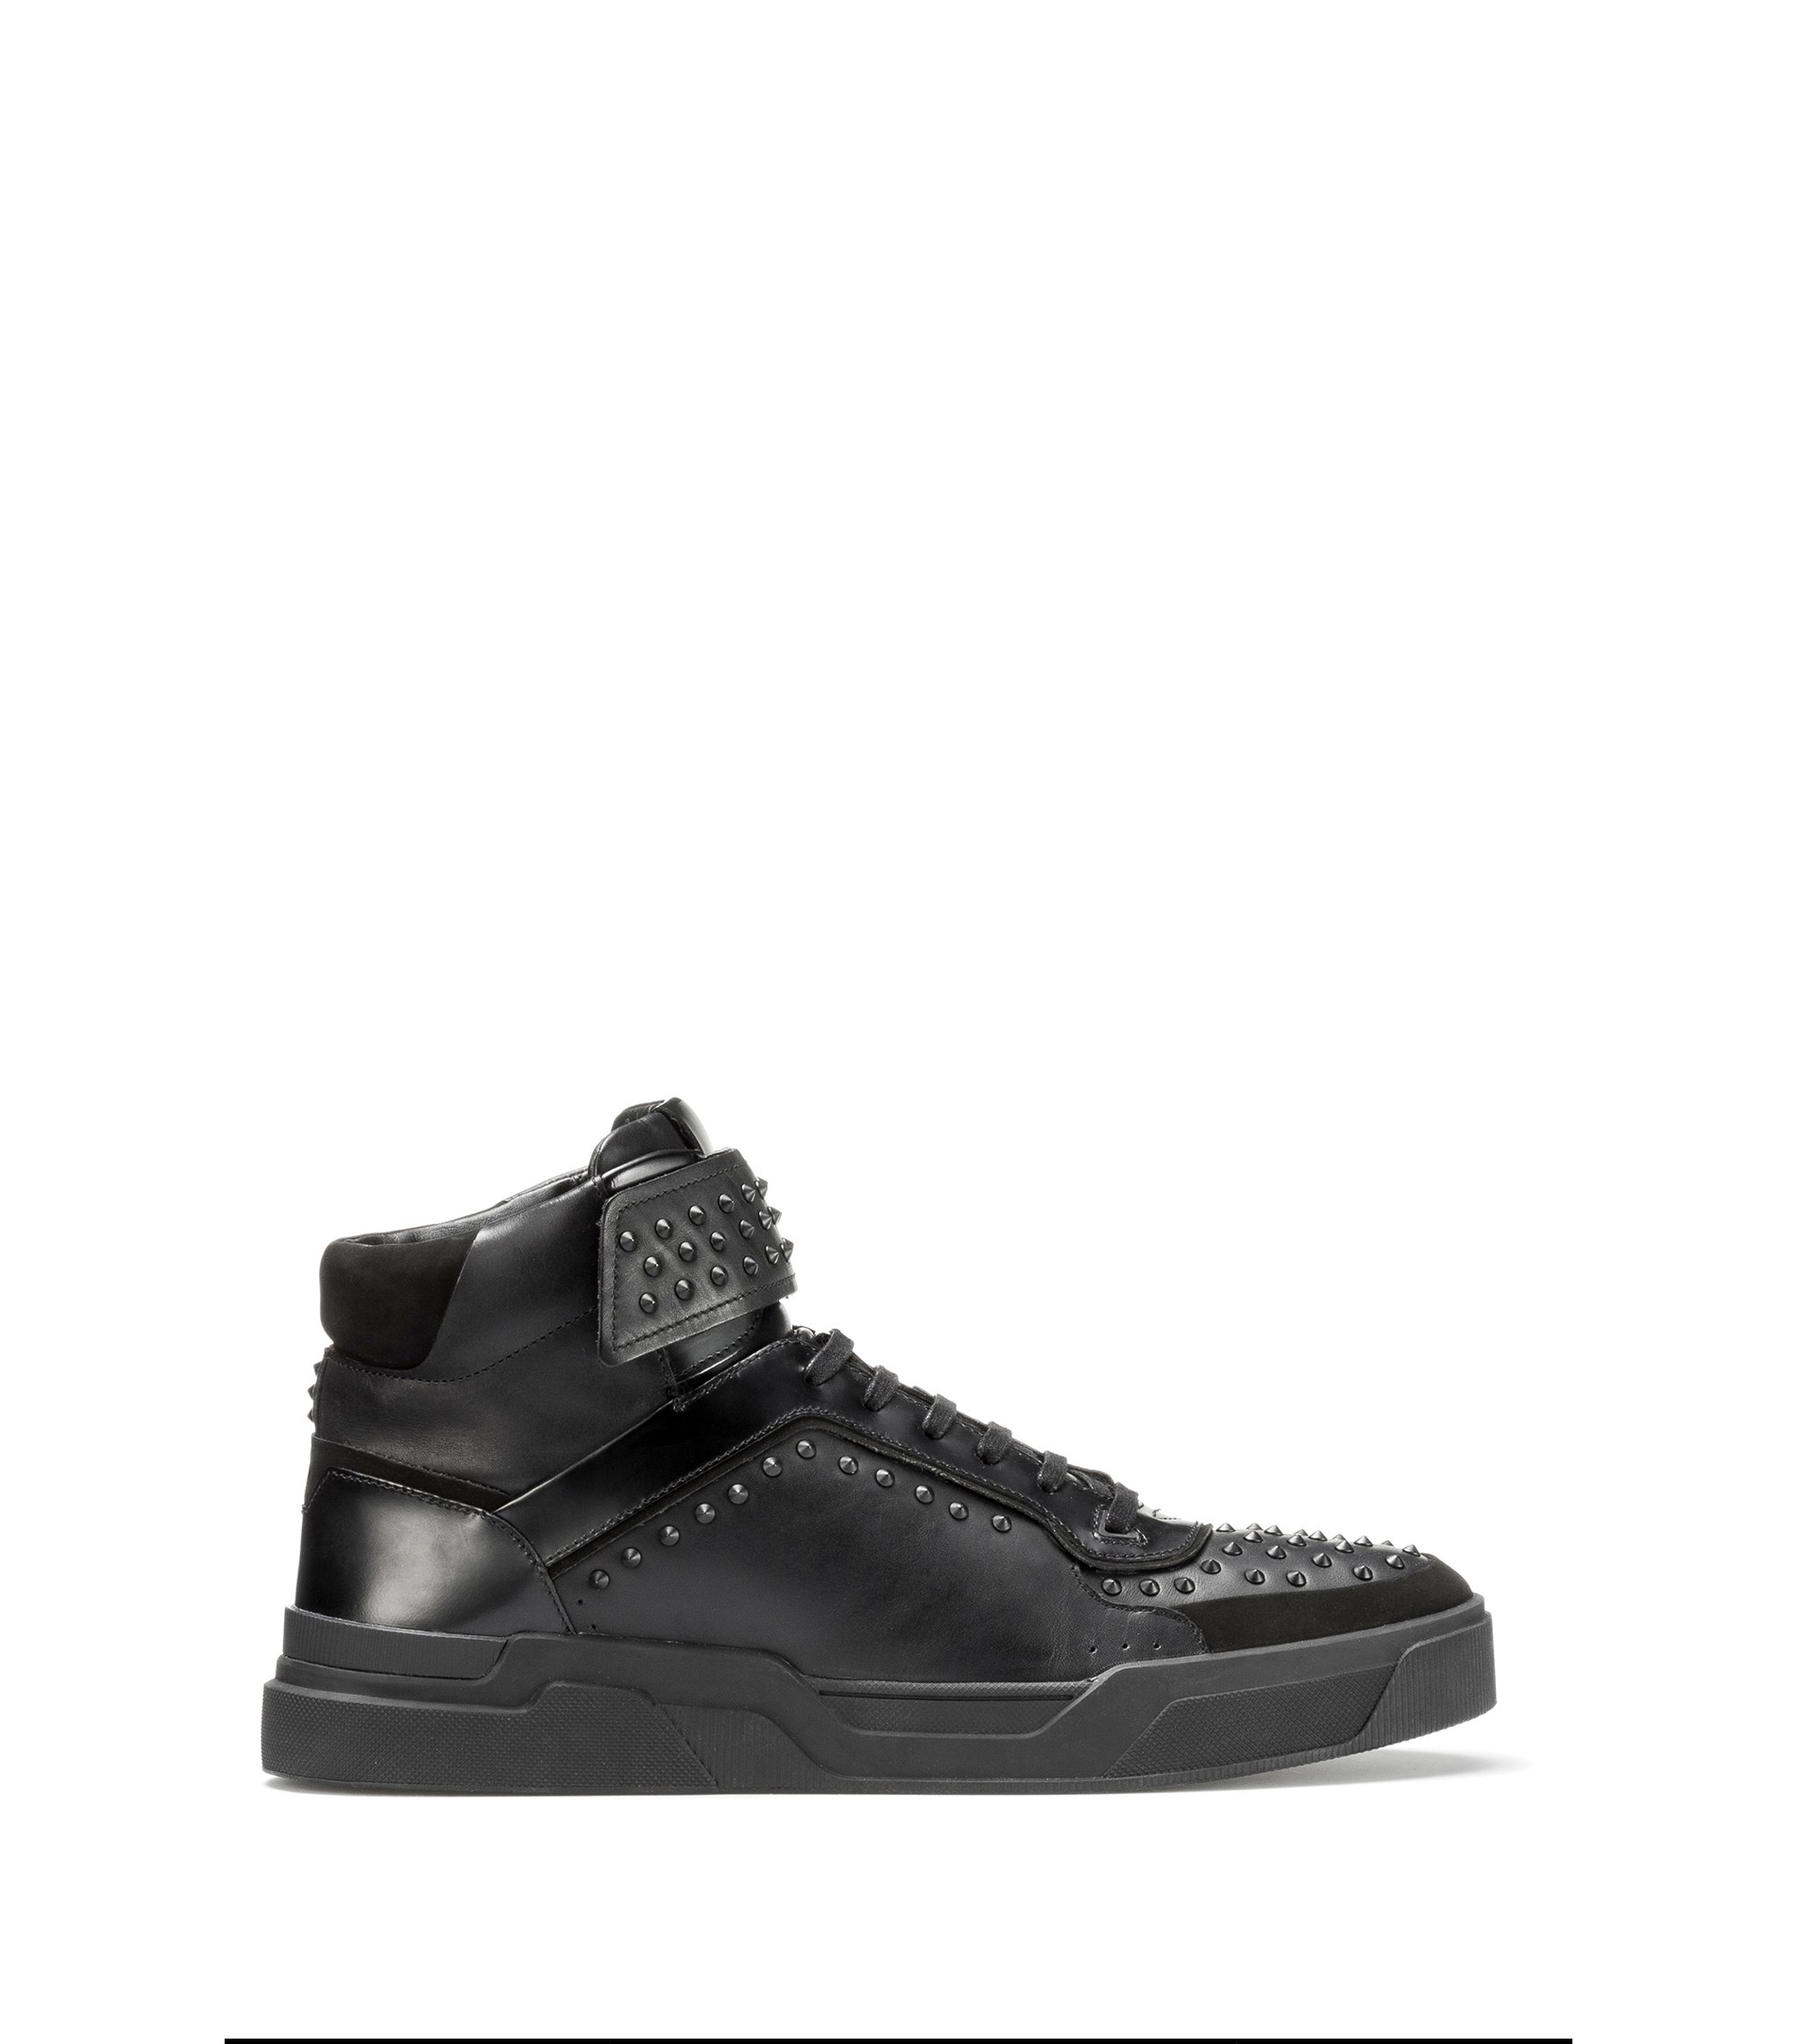 Sneakers high-top in pelle nappa con borchie, Nero